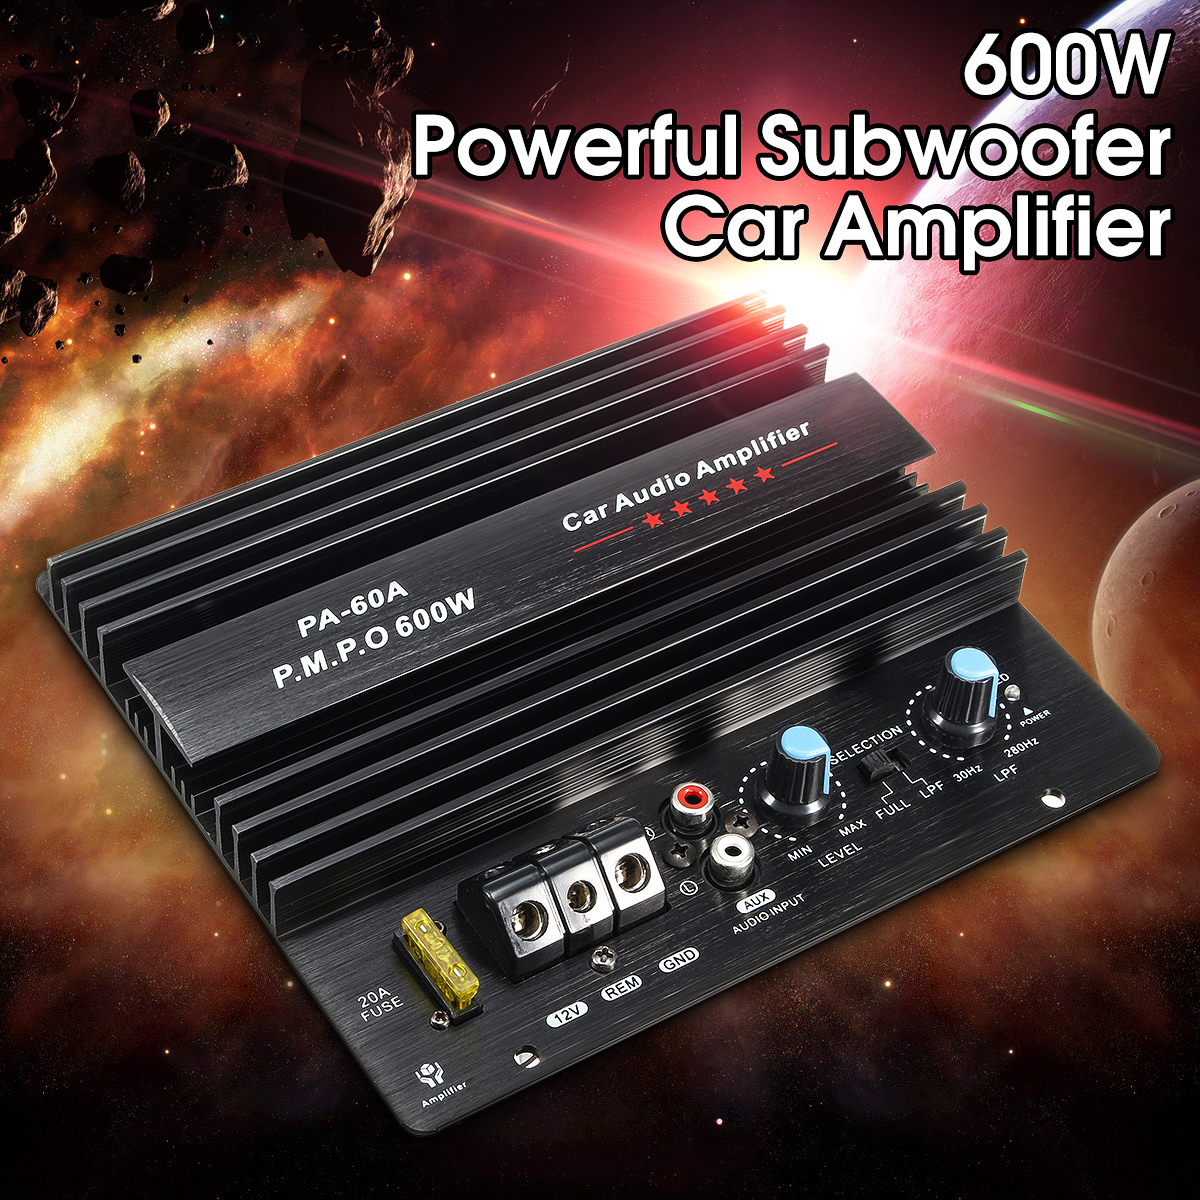 12v 600w High Power Audio Momo Amplifier Board Car Bass Subwoofers Here Are Photos Of The Actual Sony Subwoofer Module Amp Pa 60a